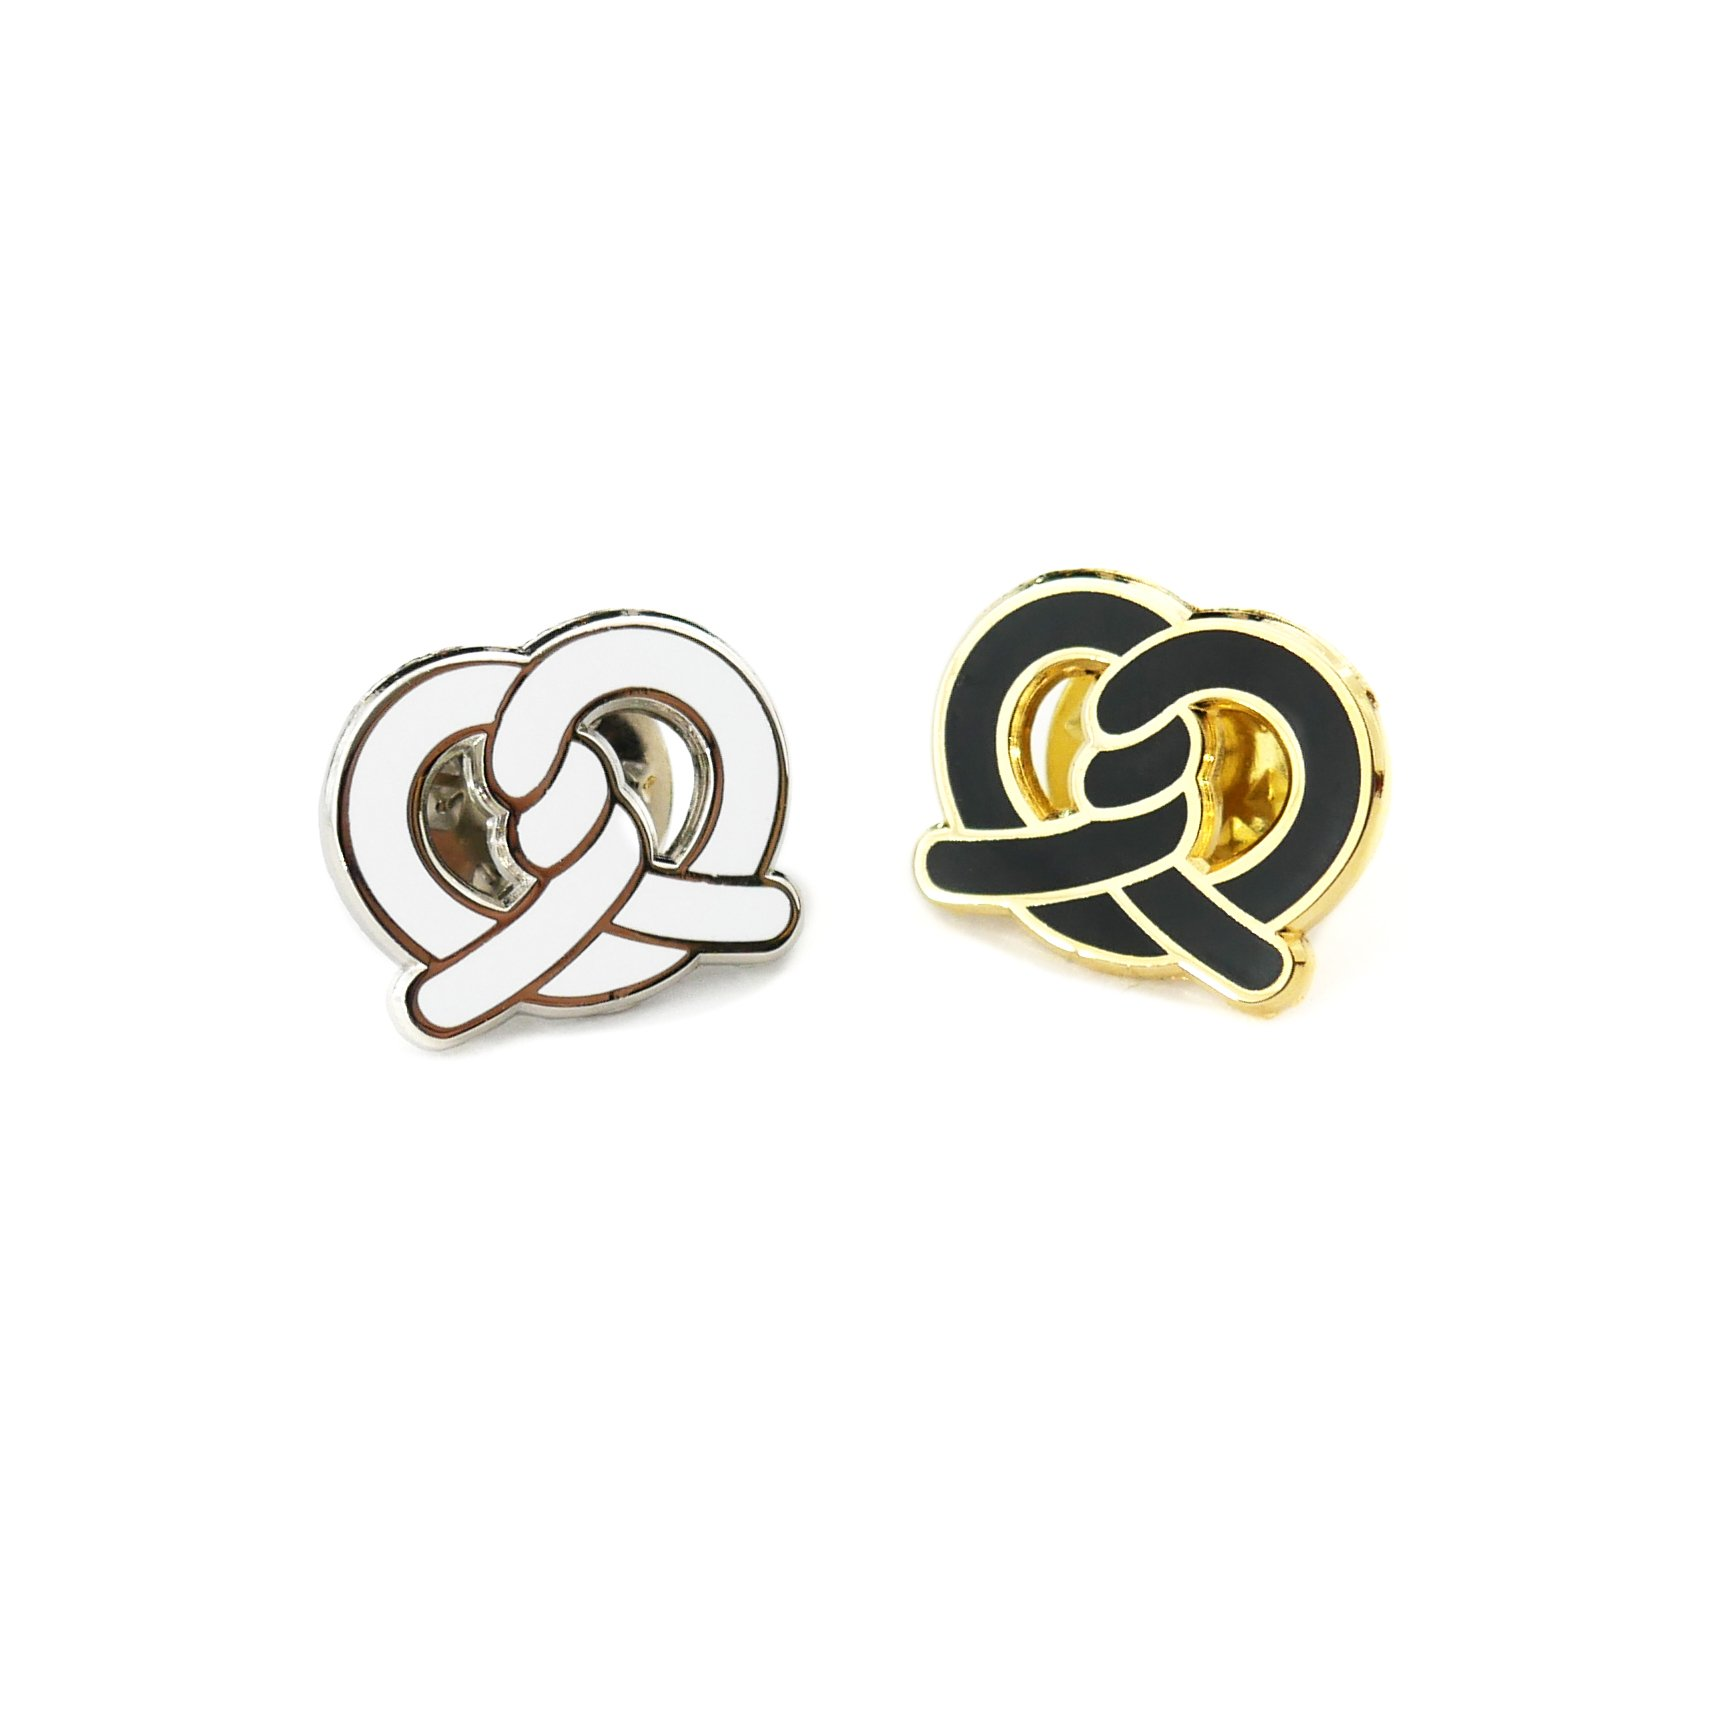 ONCH Originals Pretzel Twist Cute Enamel Pin, Kawaii Food Pin Brooch Lapel for Women and Men Gifts (White, Black)